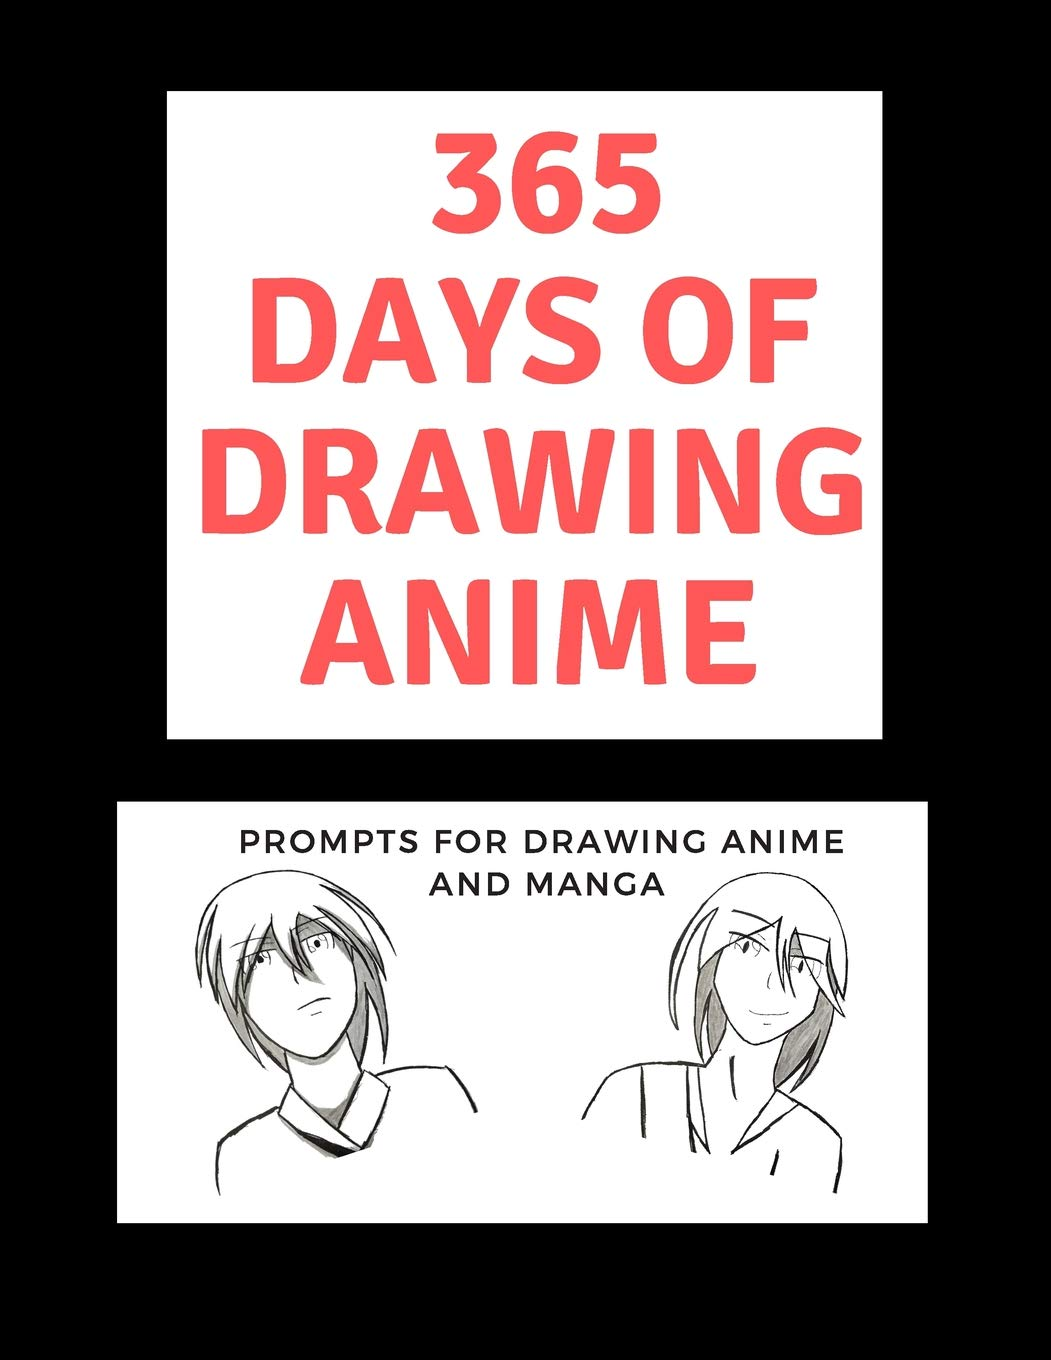 365 days of drawing anime prompts for drawing anime and manga daily sketching ideas paperback october 31 2018